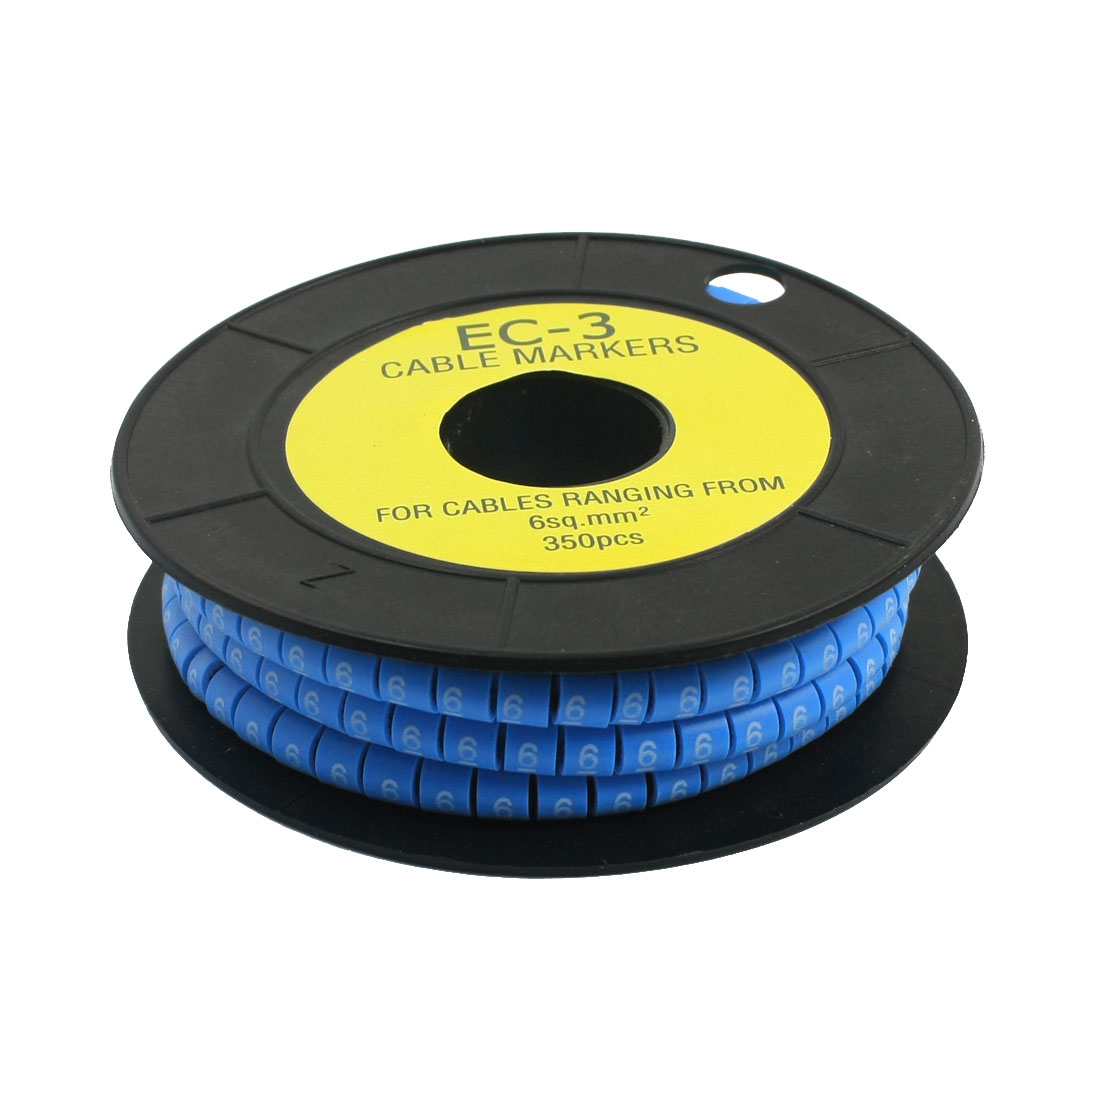 350PCS Blue Soft PVC Arabic Number 6 Cable Markers for 6mm2 Wire